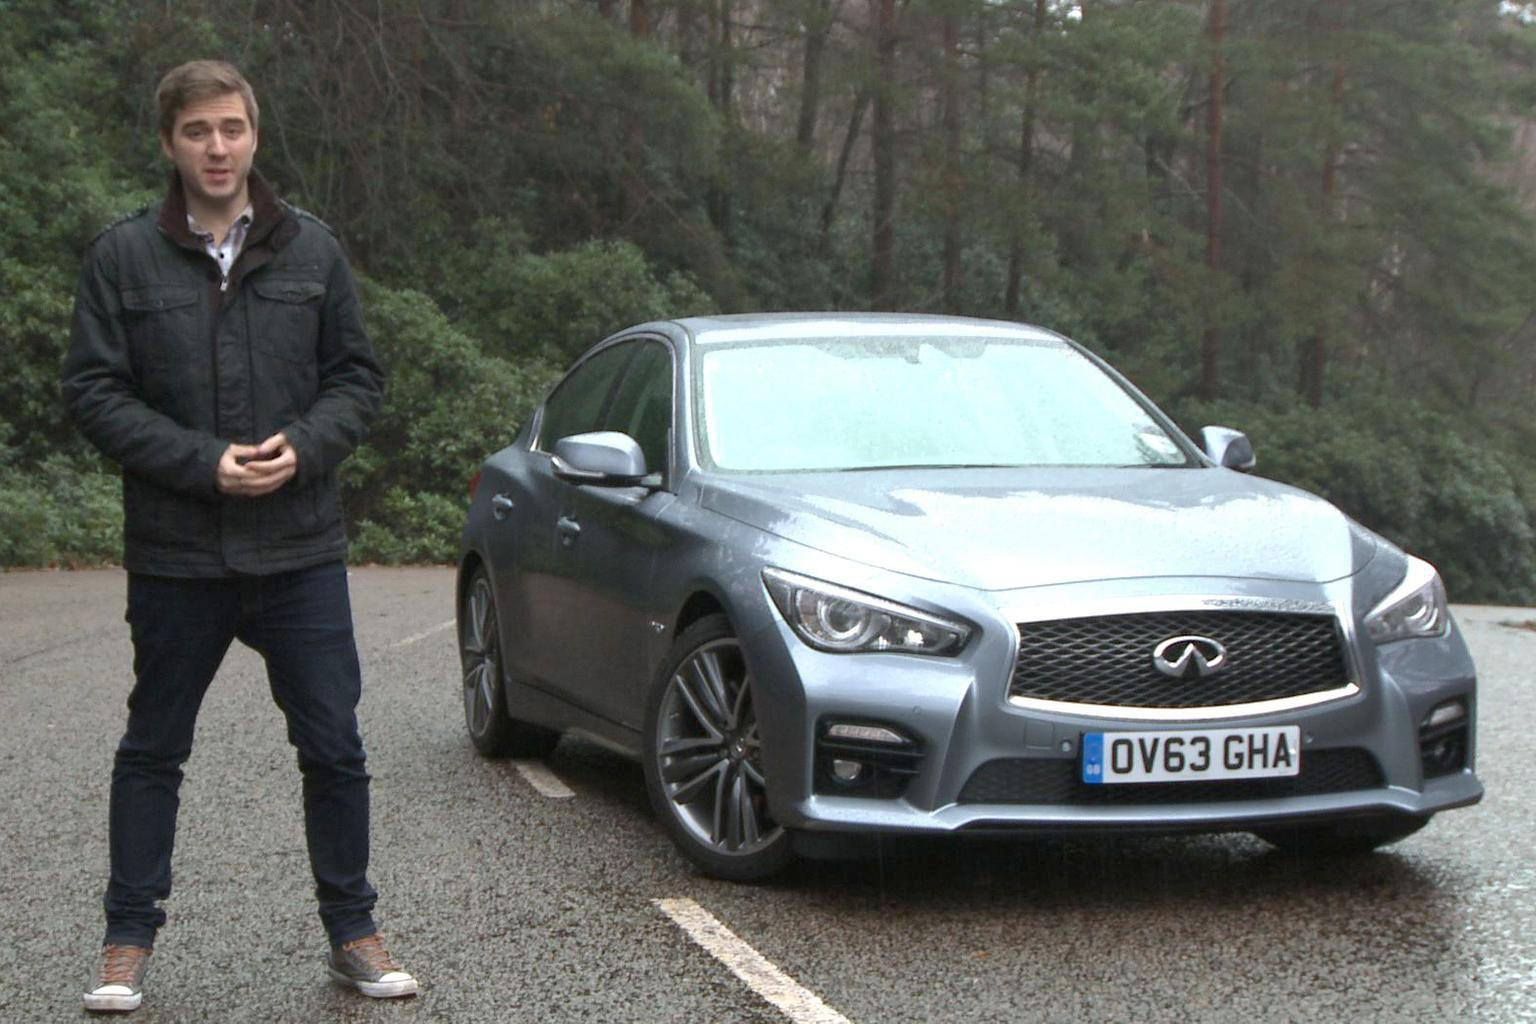 2014 Infiniti Q50 video road test